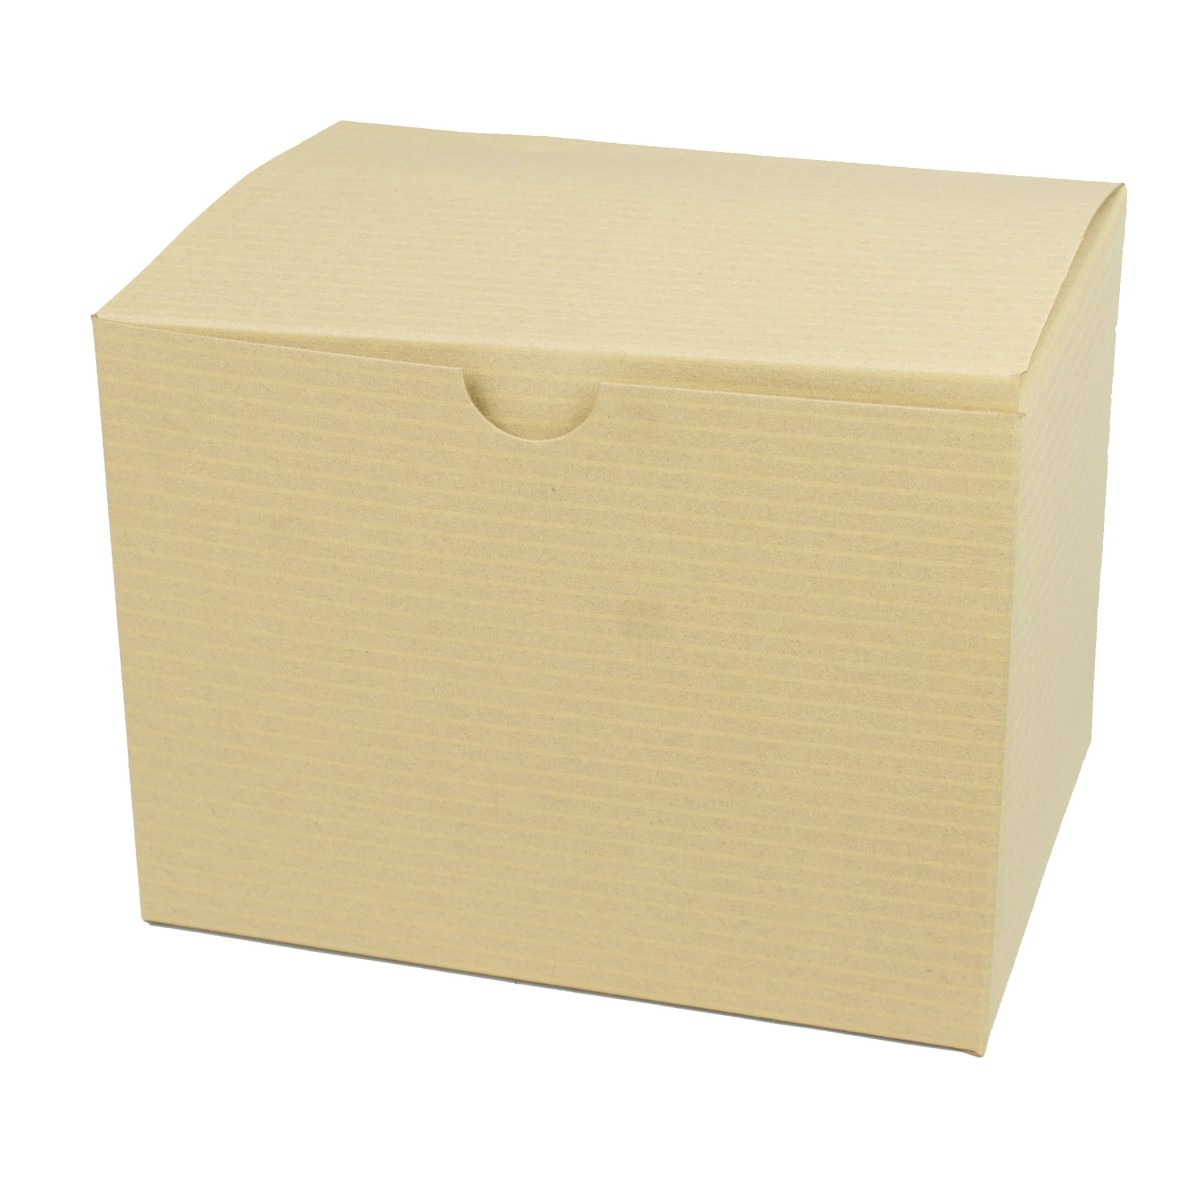 6 x 4.5 x 4.5 OATMEAL TINTED TUCK-TOP GIFT BOXES